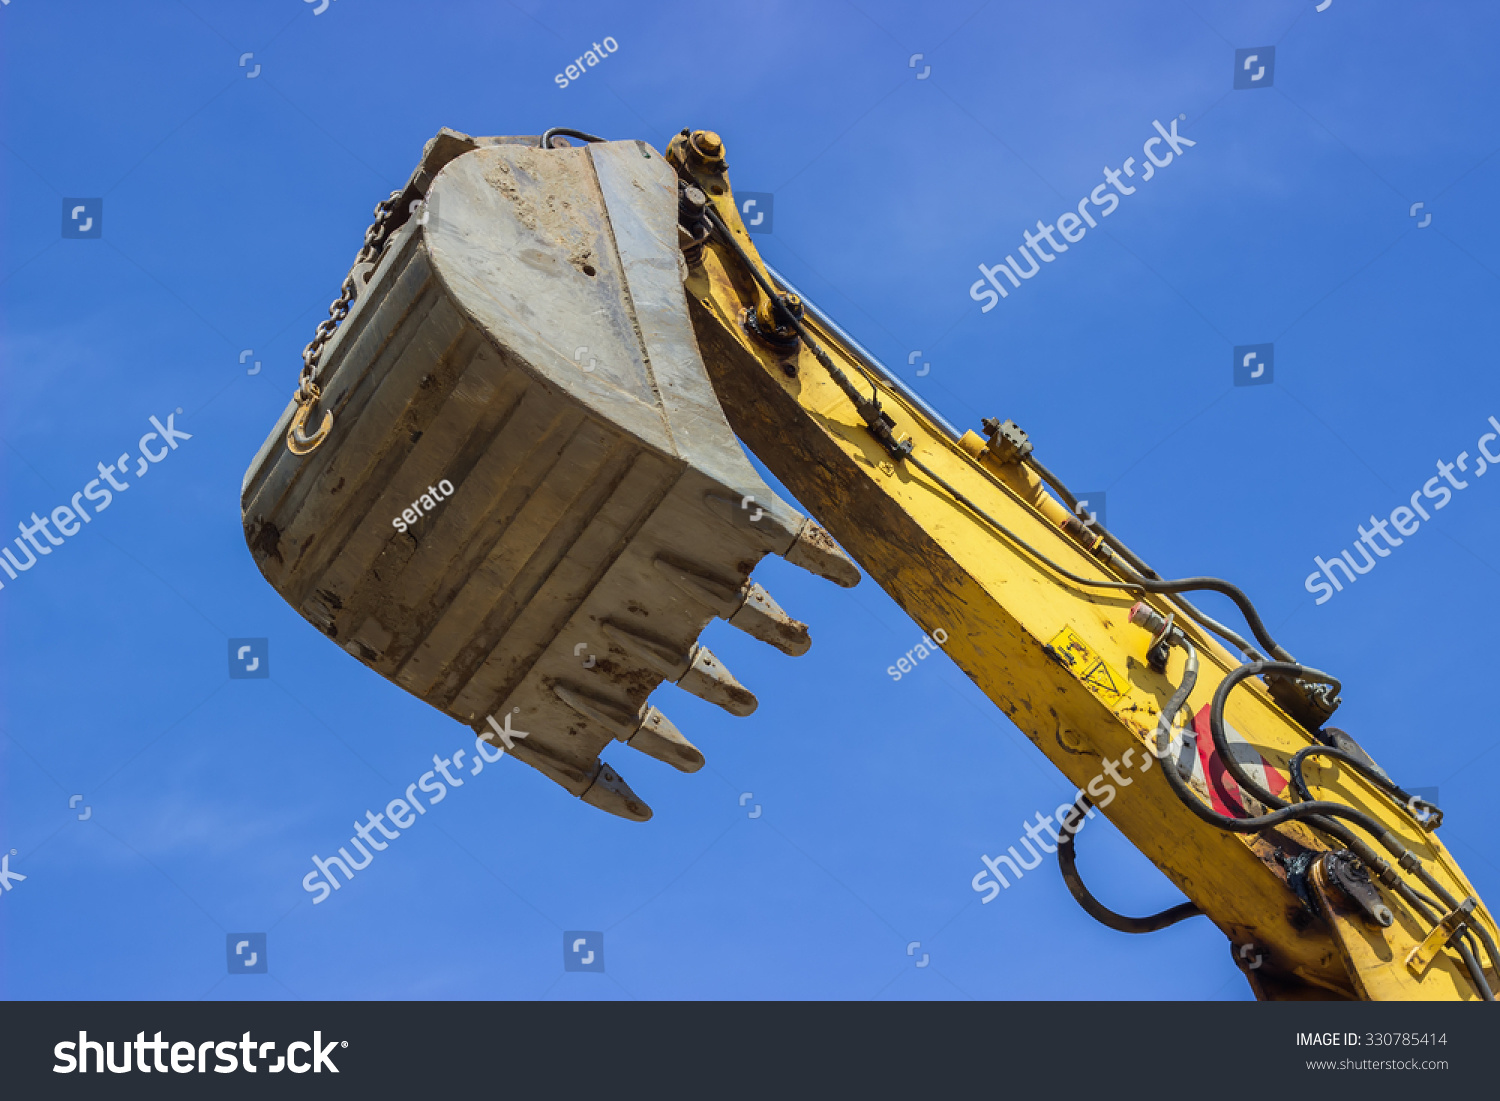 Excavator Hydraulic Arm Project : Hydraulic excavator arm and a bucket at construction site